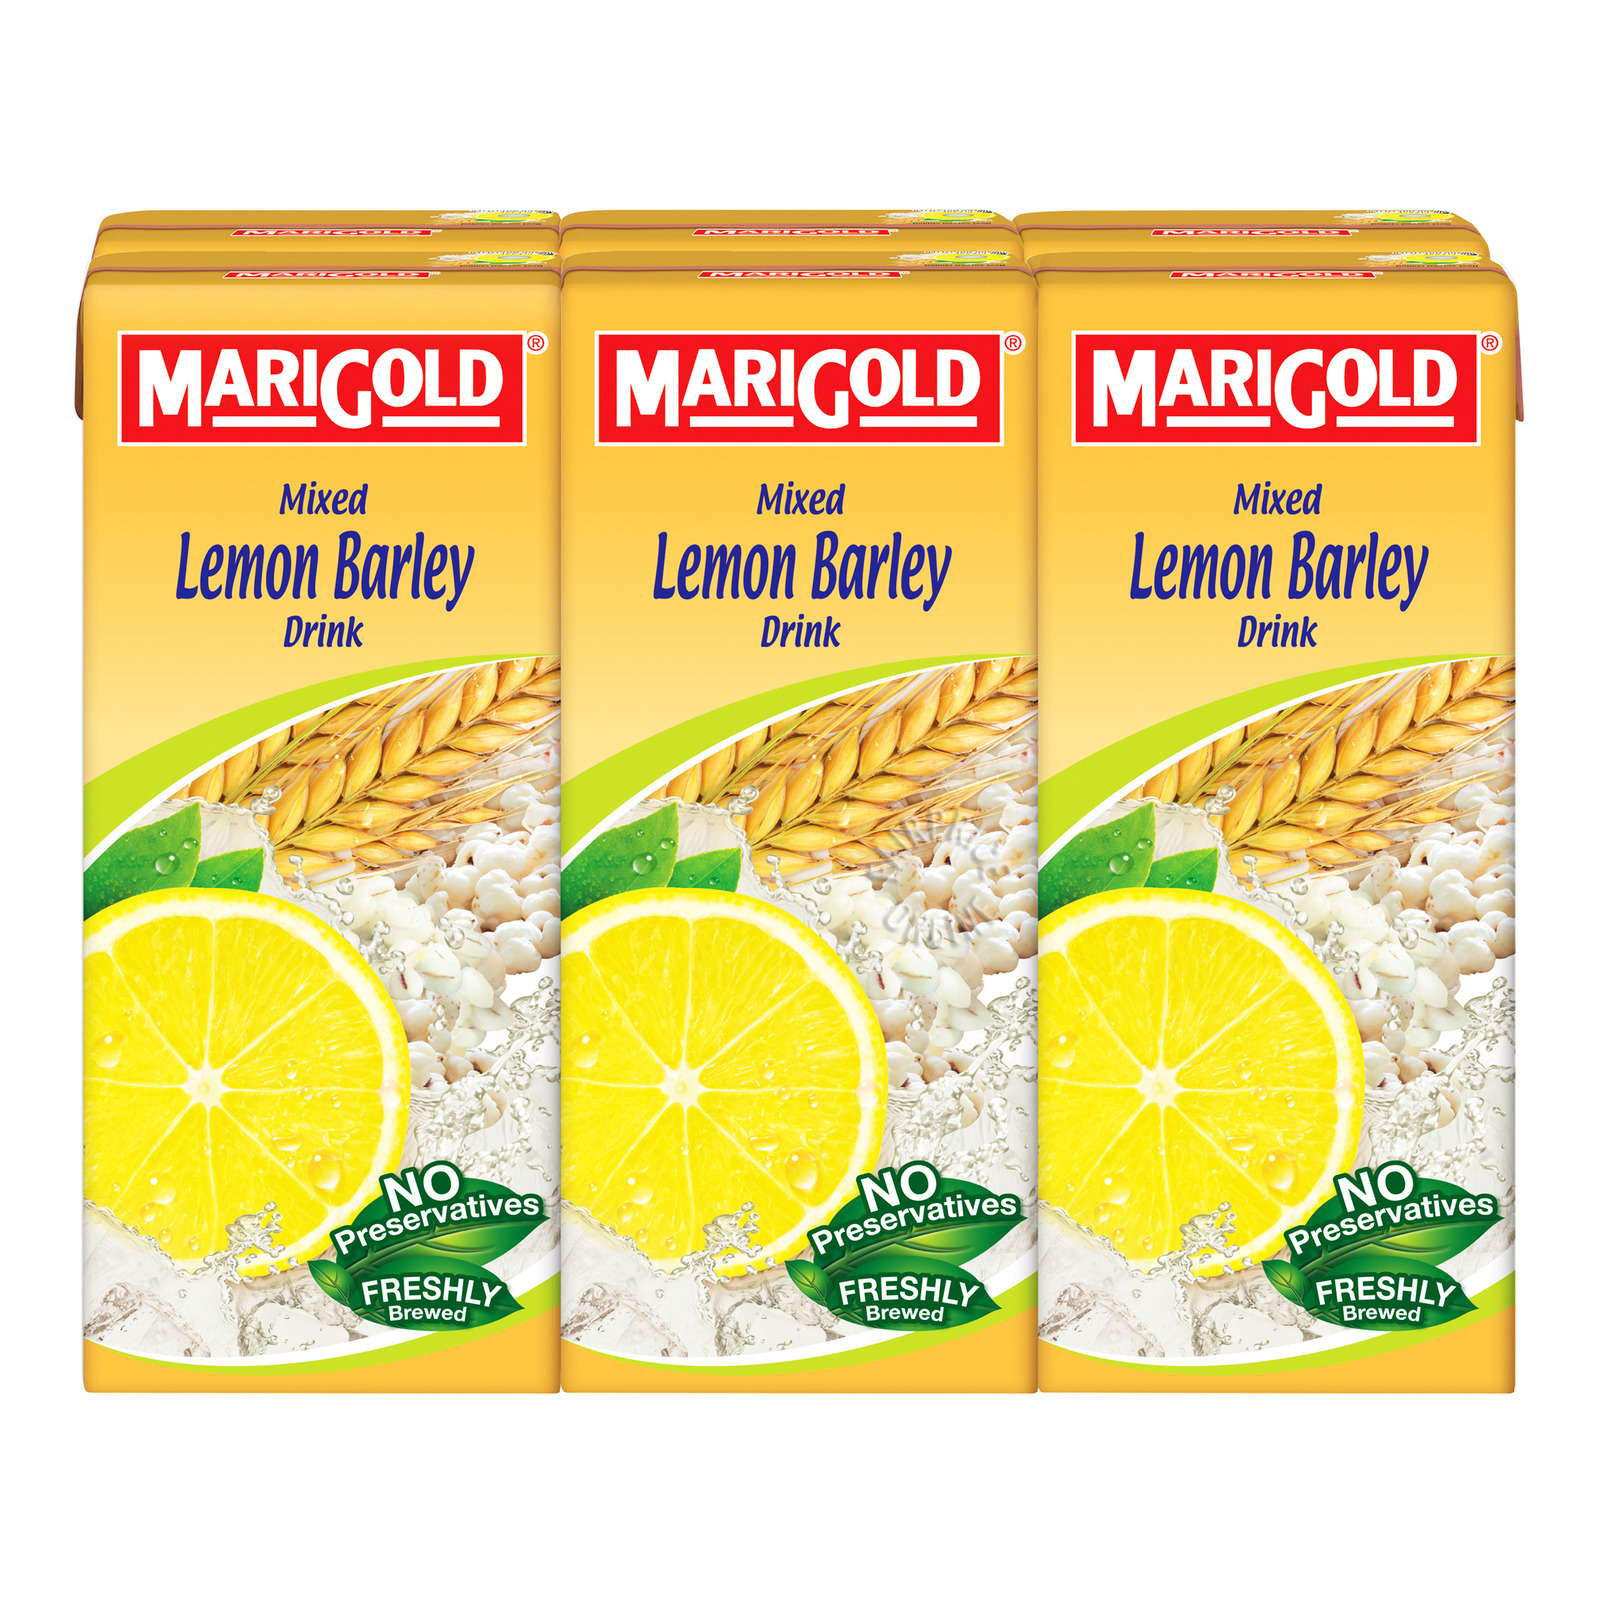 Marigold Packet Drink - Lemon Barley